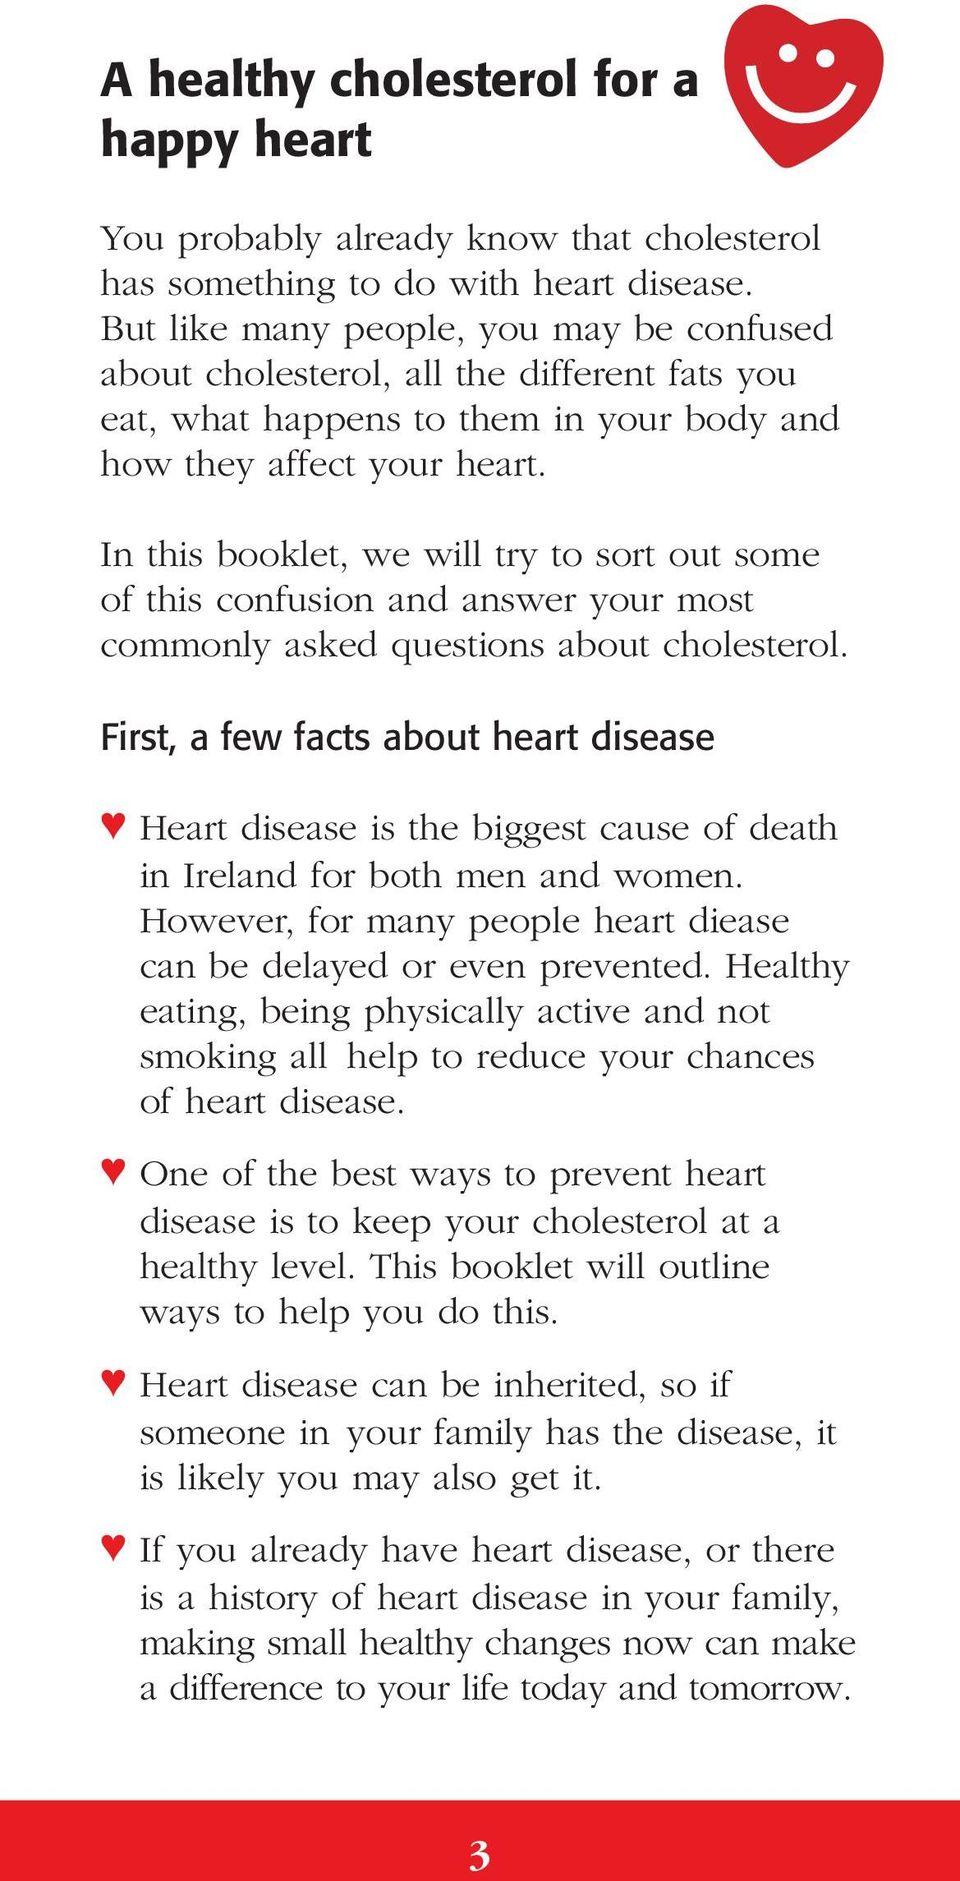 In this booklet, we will try to sort out some of this confusion and answer your most commonly asked questions about cholesterol.